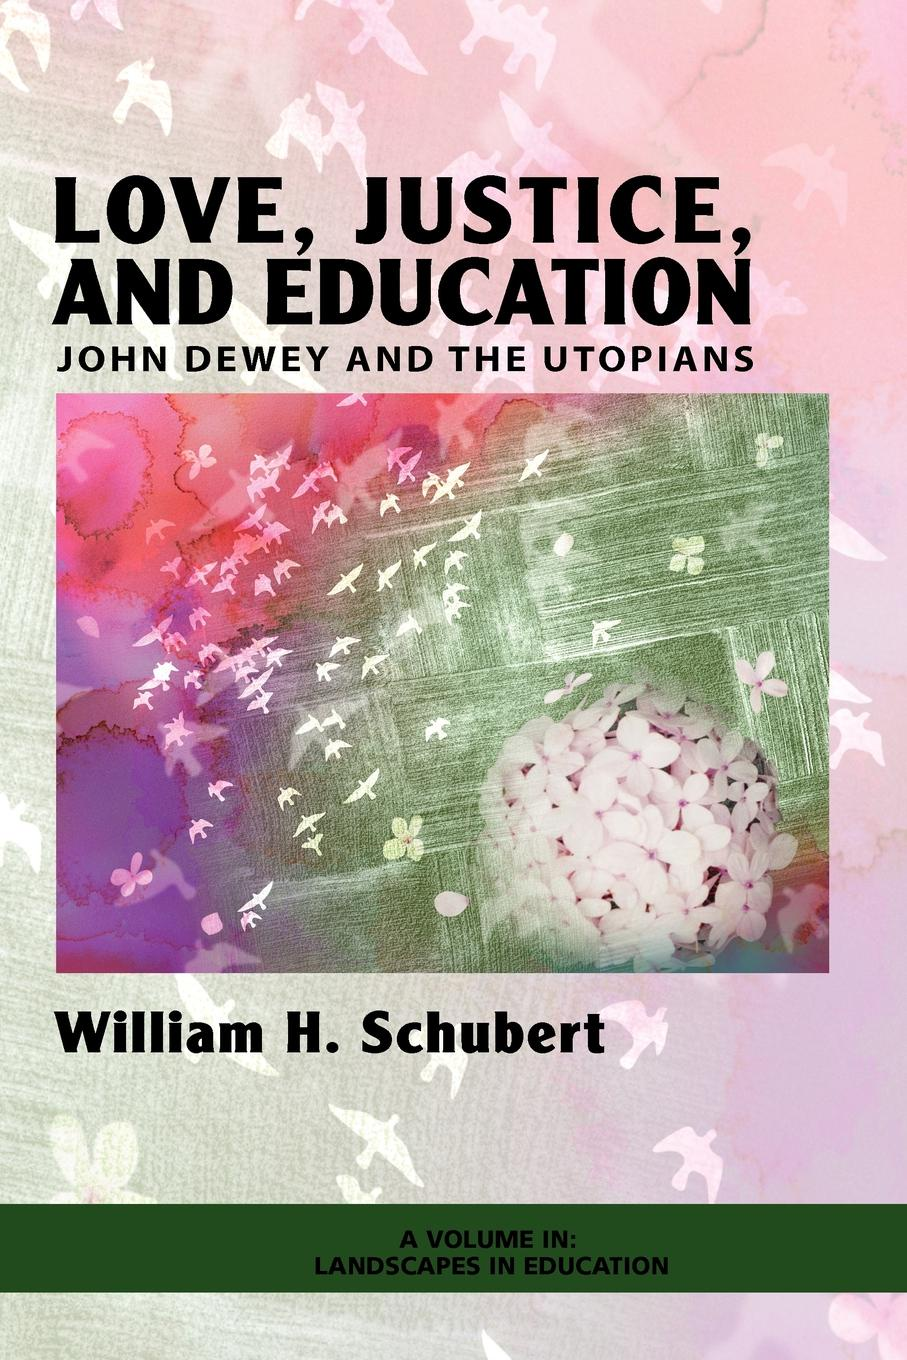 William Henry Schubert Love, Justice, and Education. John Dewey and the Utopians (PB) john dewey democracy and education